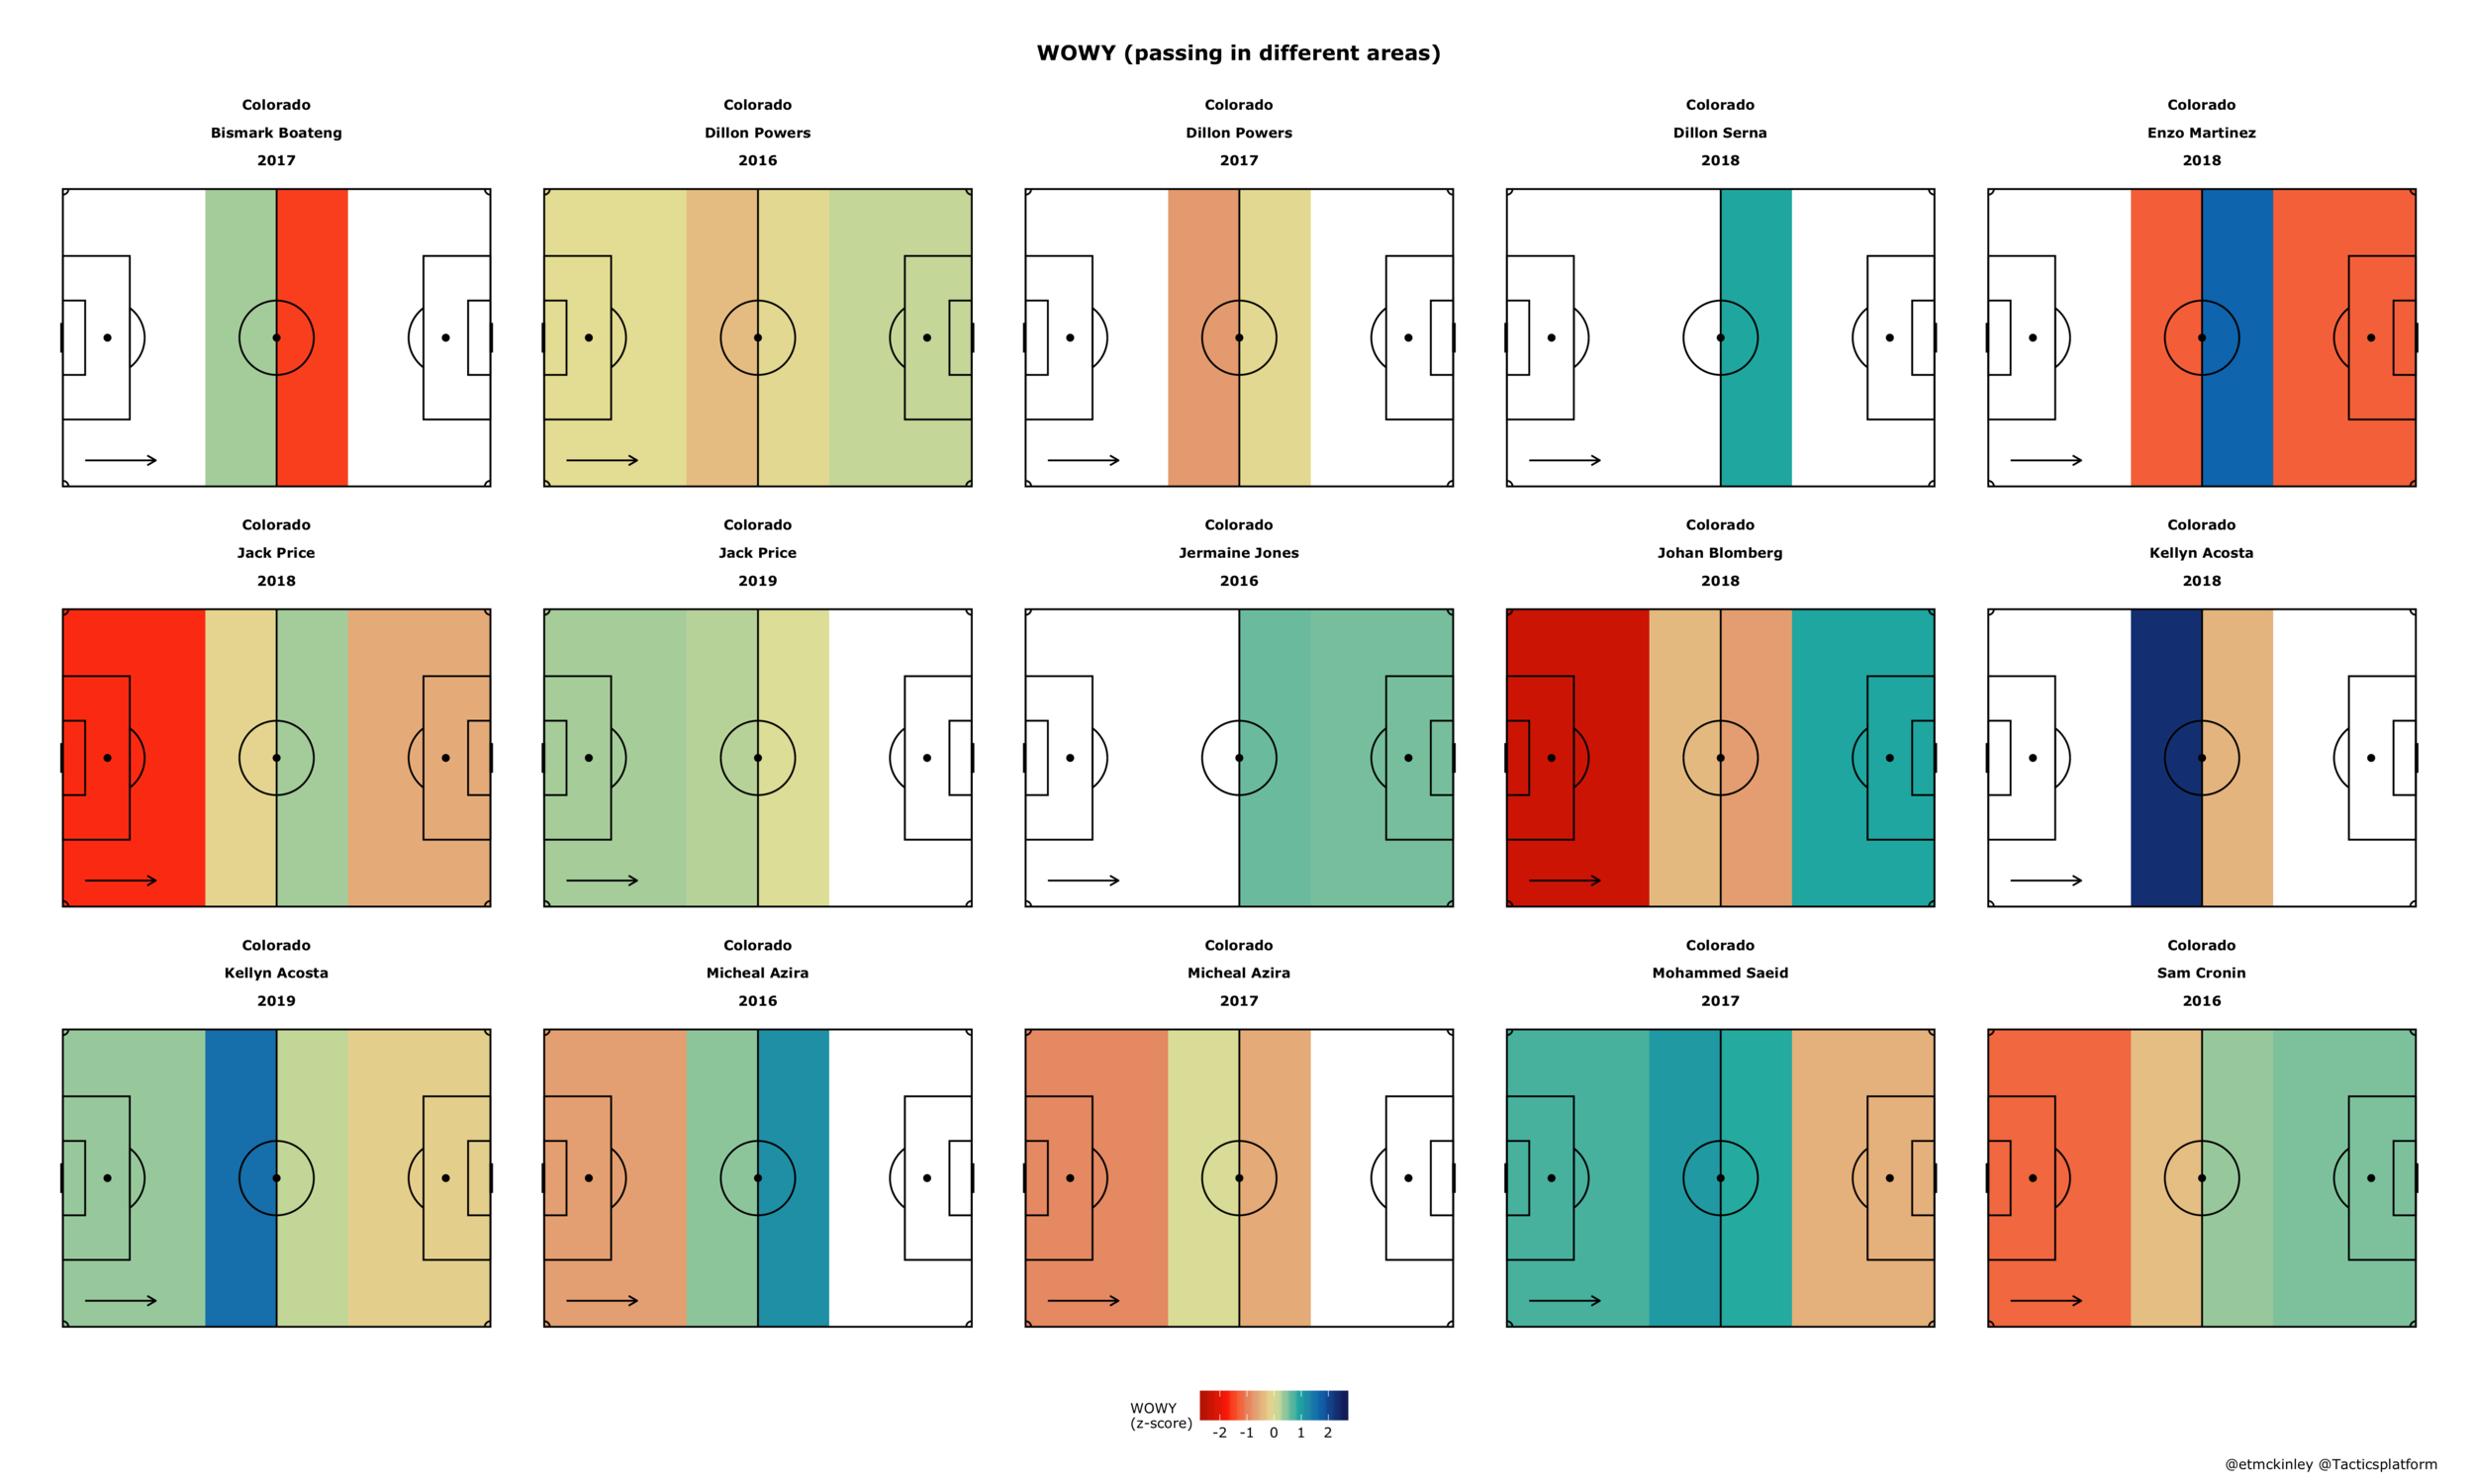 Red means the player's passing in that zone has below-average impact on his team's offense, blue means his passes in that zone have above-average impact.  Read more here.